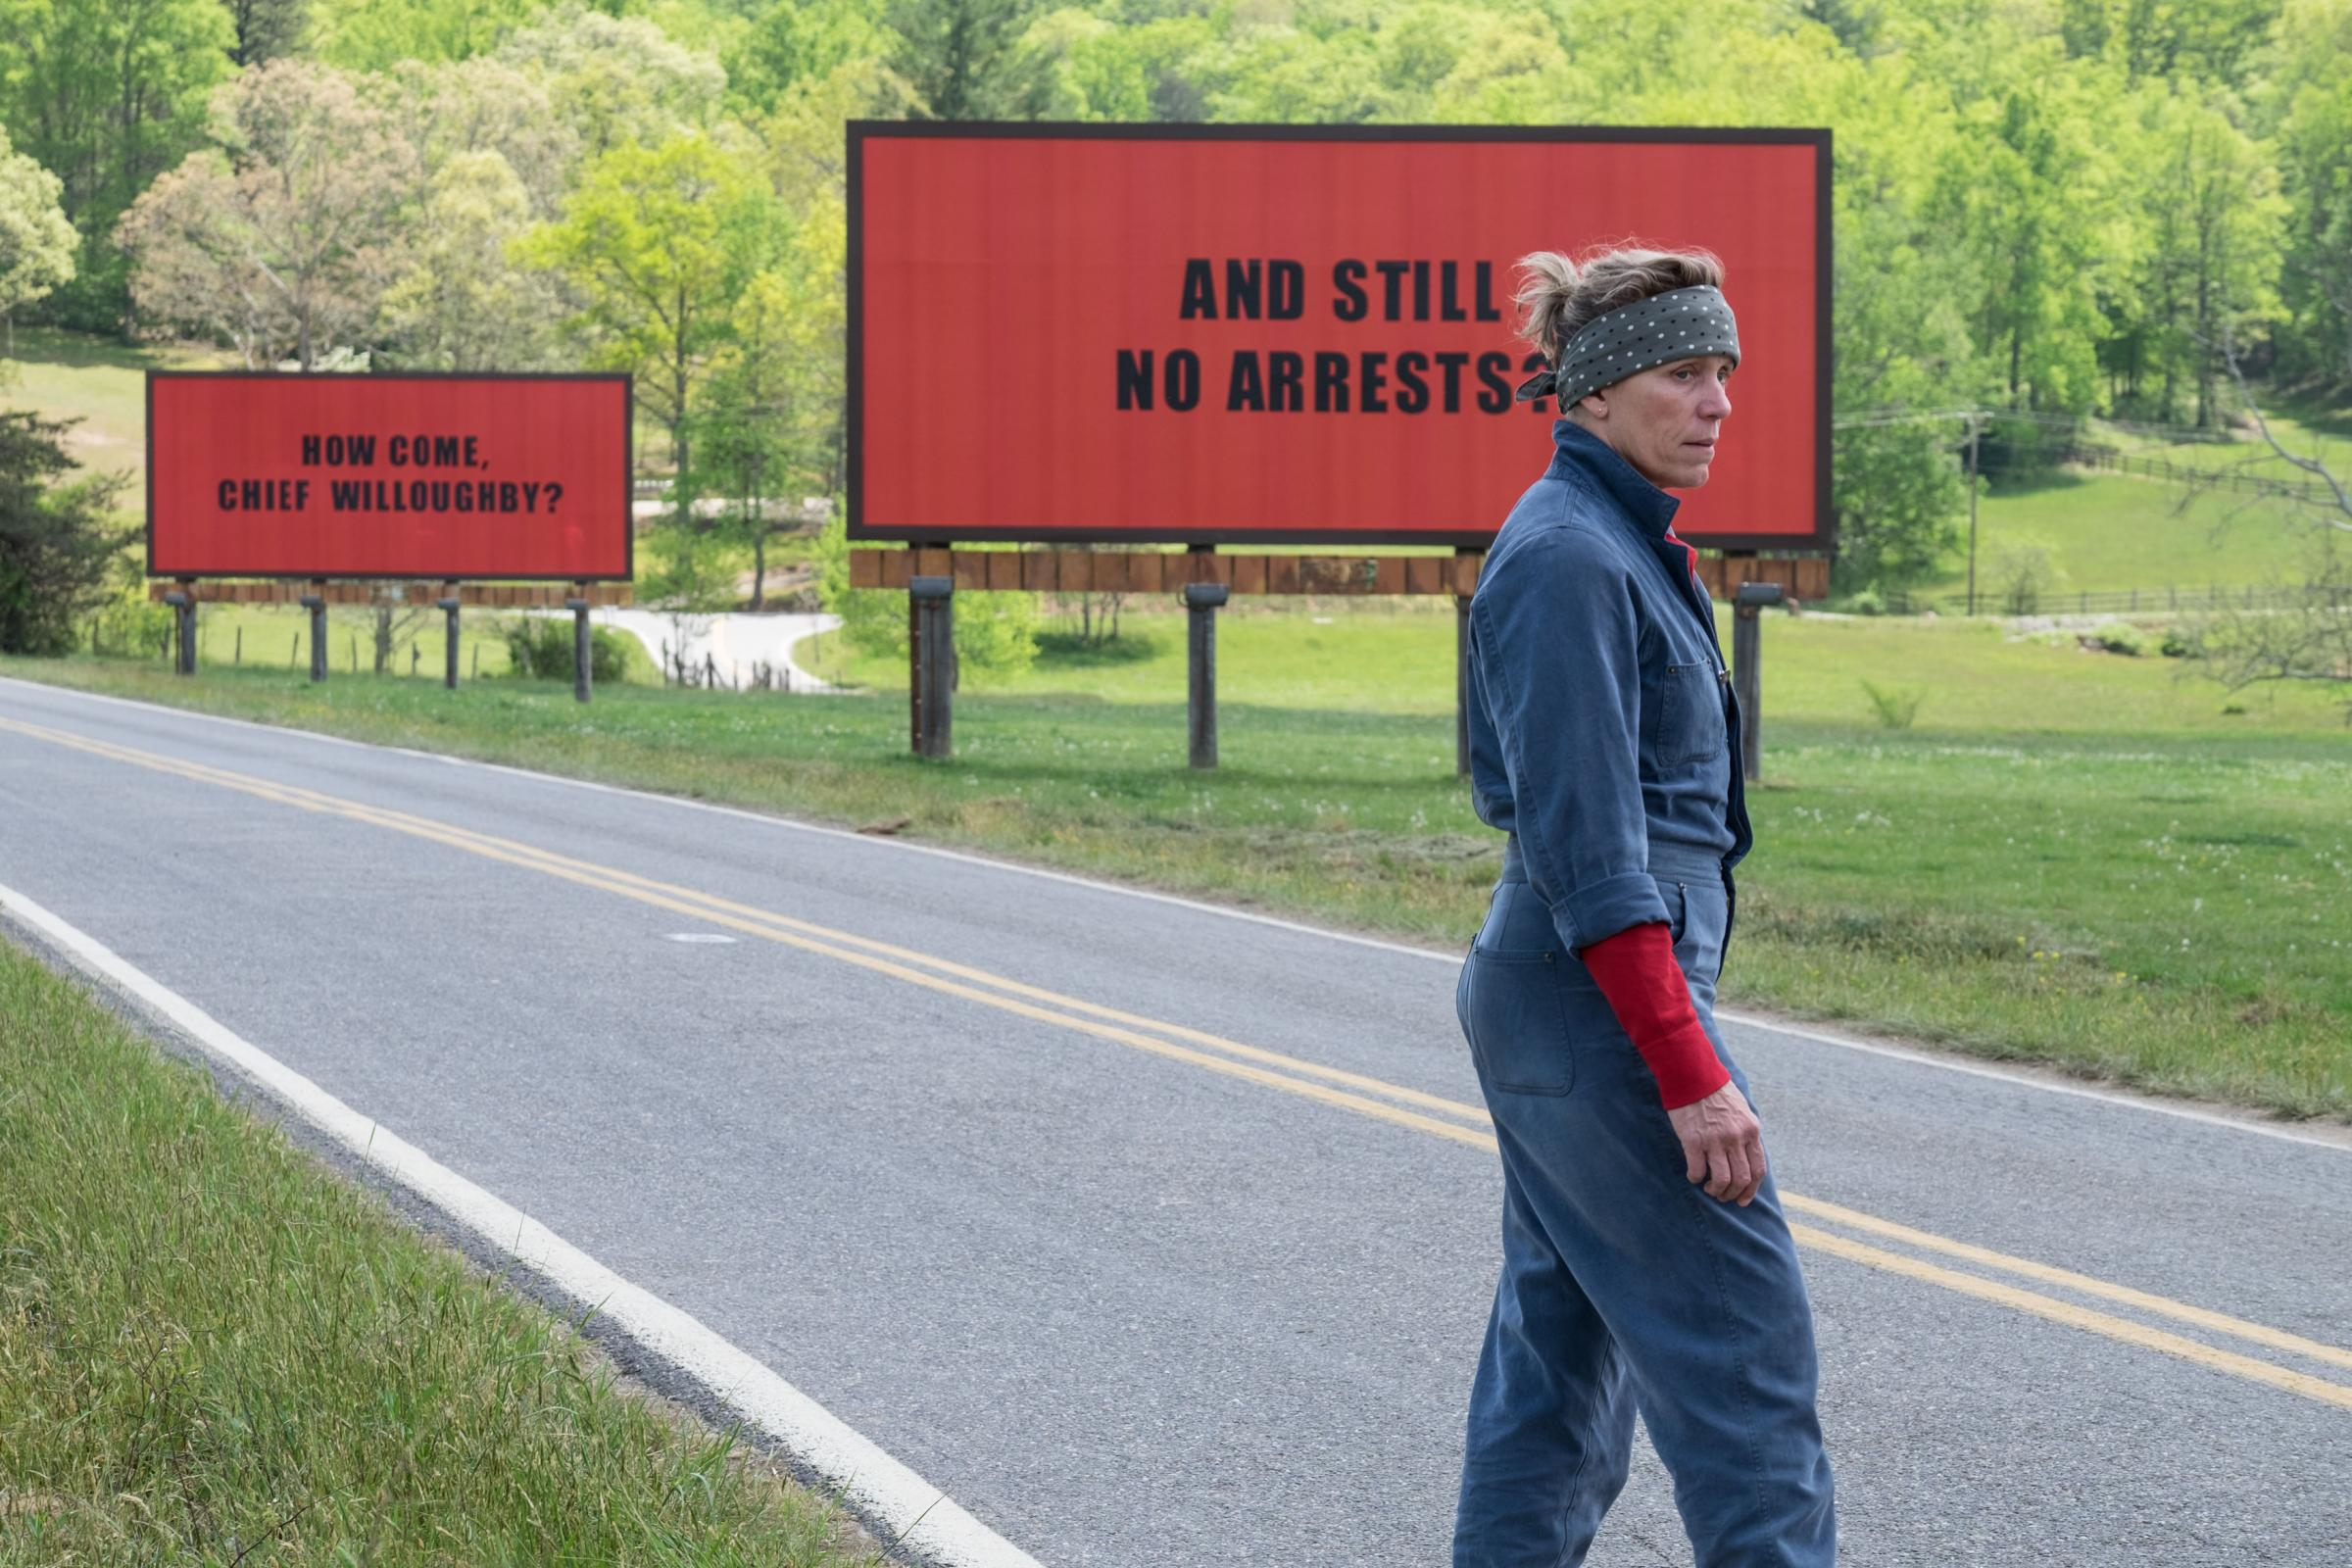 Frances McDormand as Mildred Hayes in Three Billboards Outside Ebbing, Missouri  (PA Photo/Twentieth Century Fox Film Corporation/Merrick Morton)